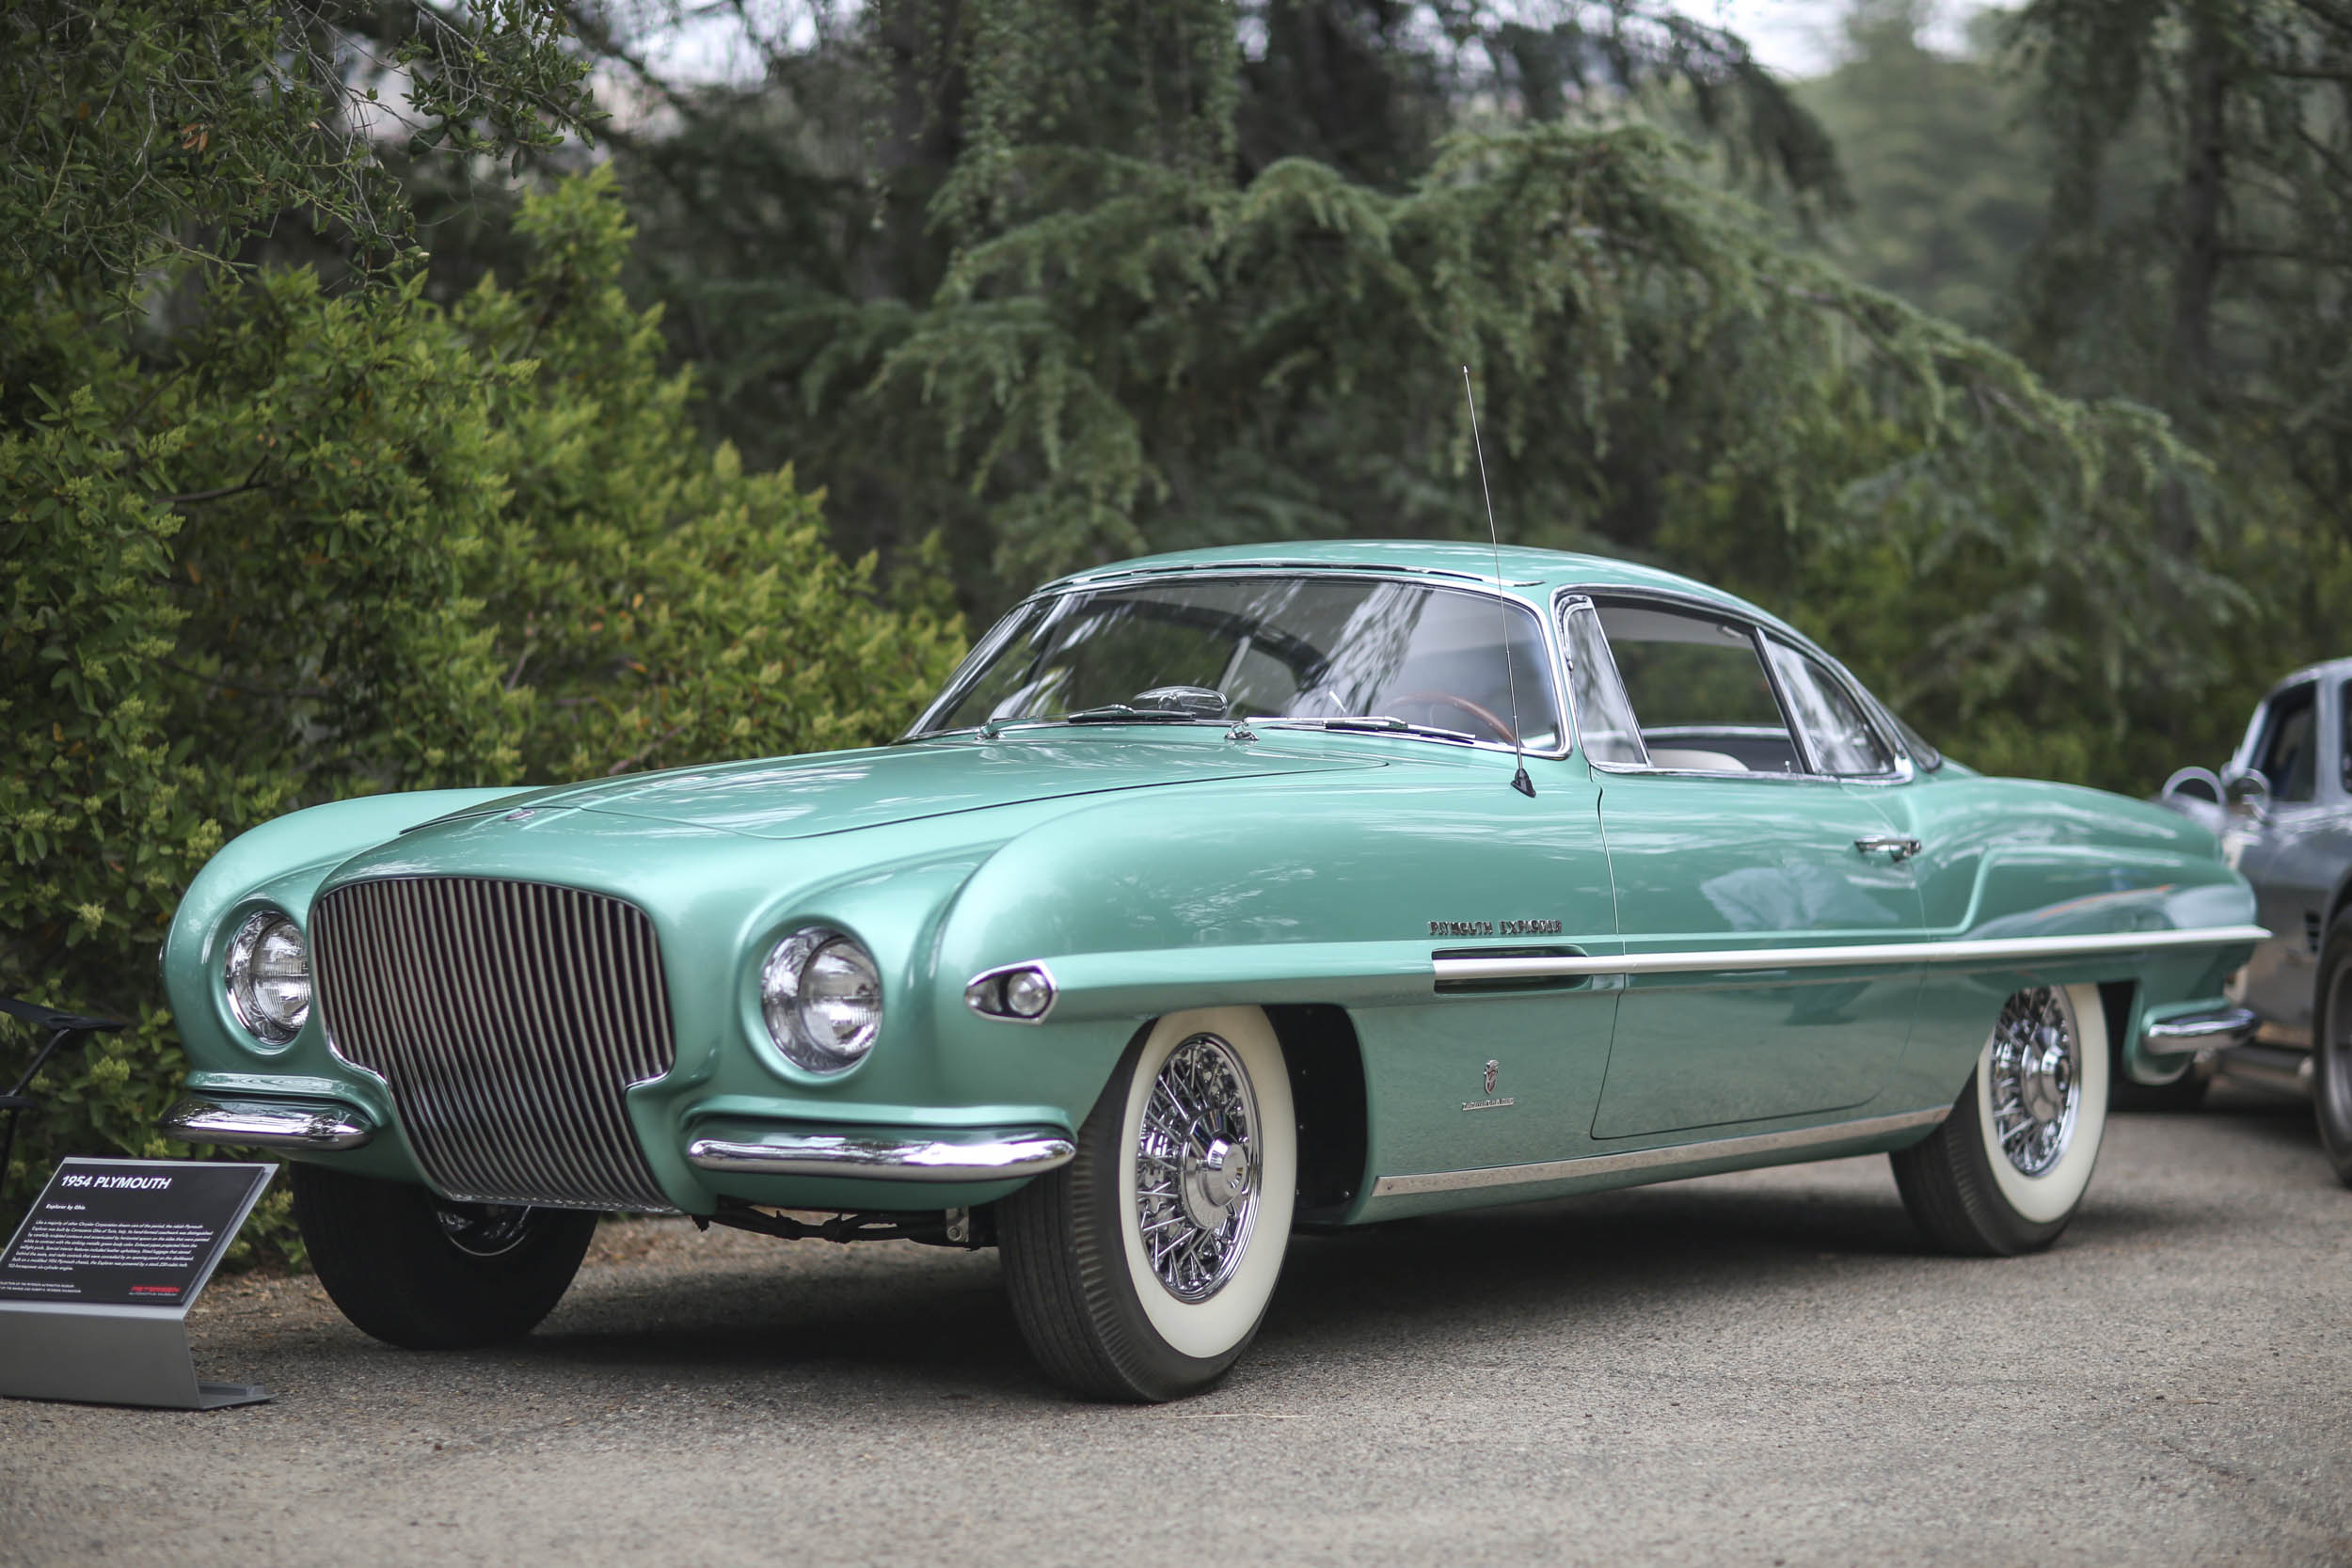 1954 Plymouth Explorer from the Petersen Automotive Museum